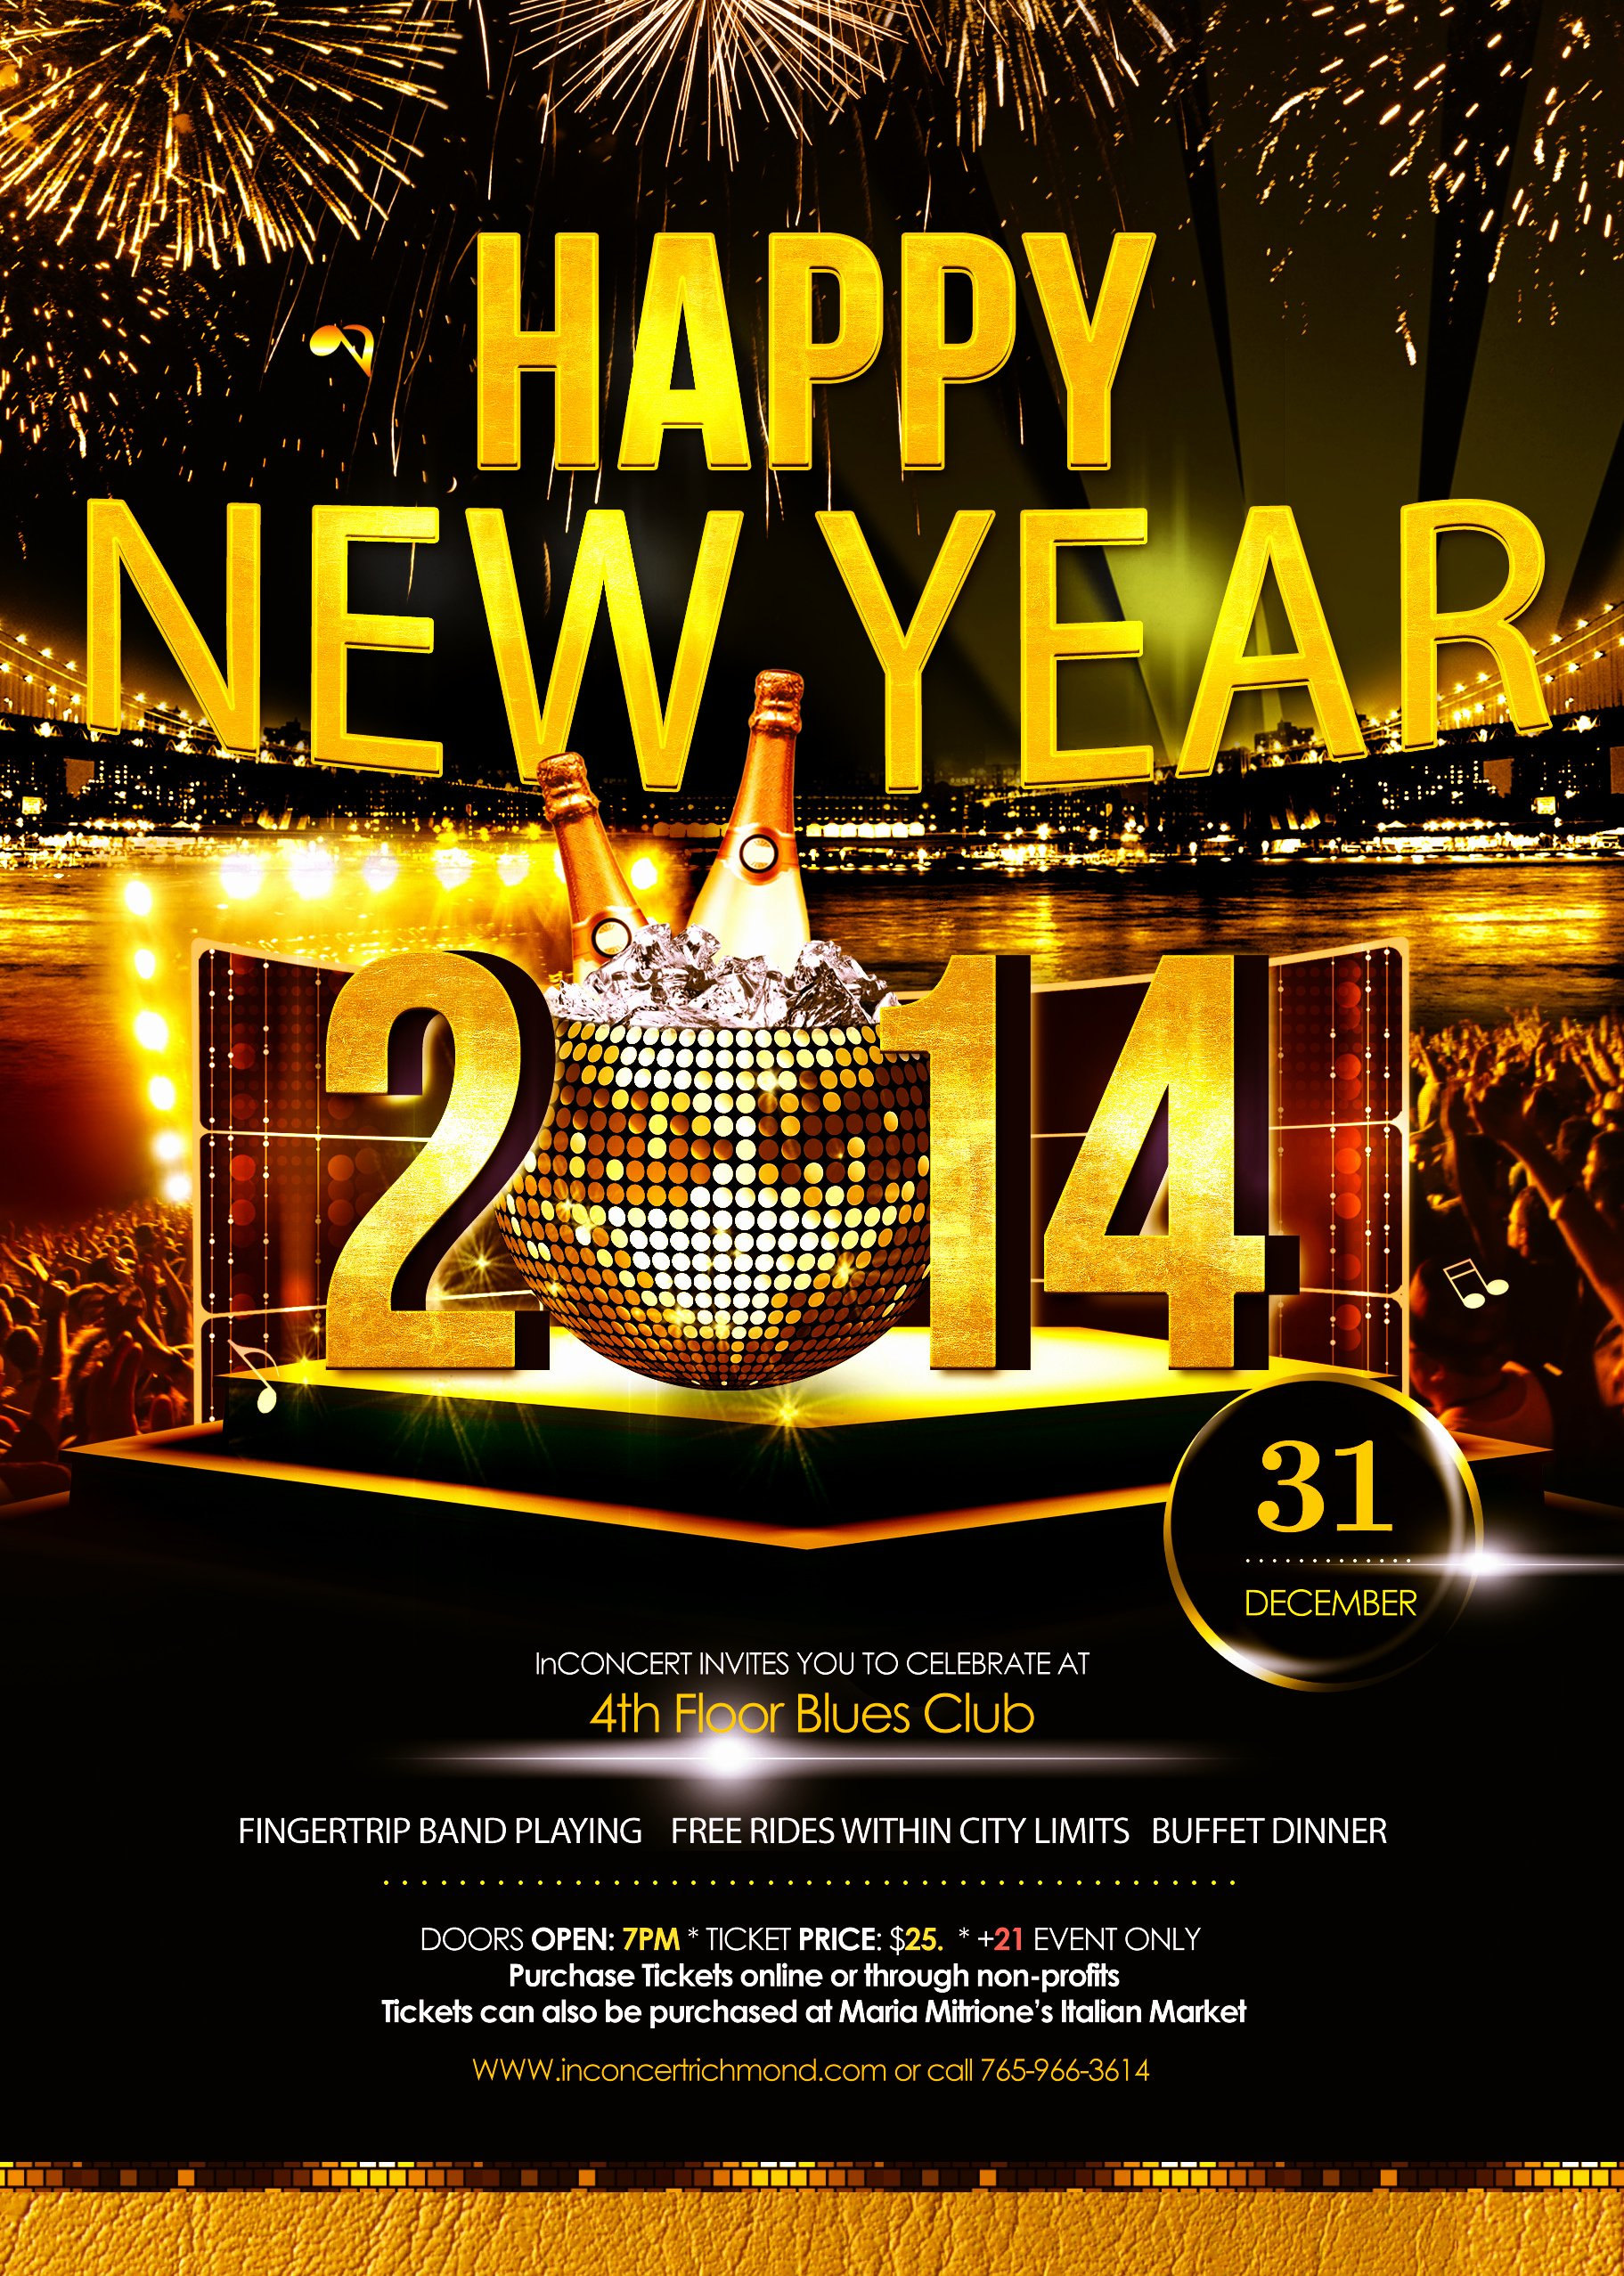 New Years Eve Flyer Awesome Happy New Year Flyer Inconcert2014